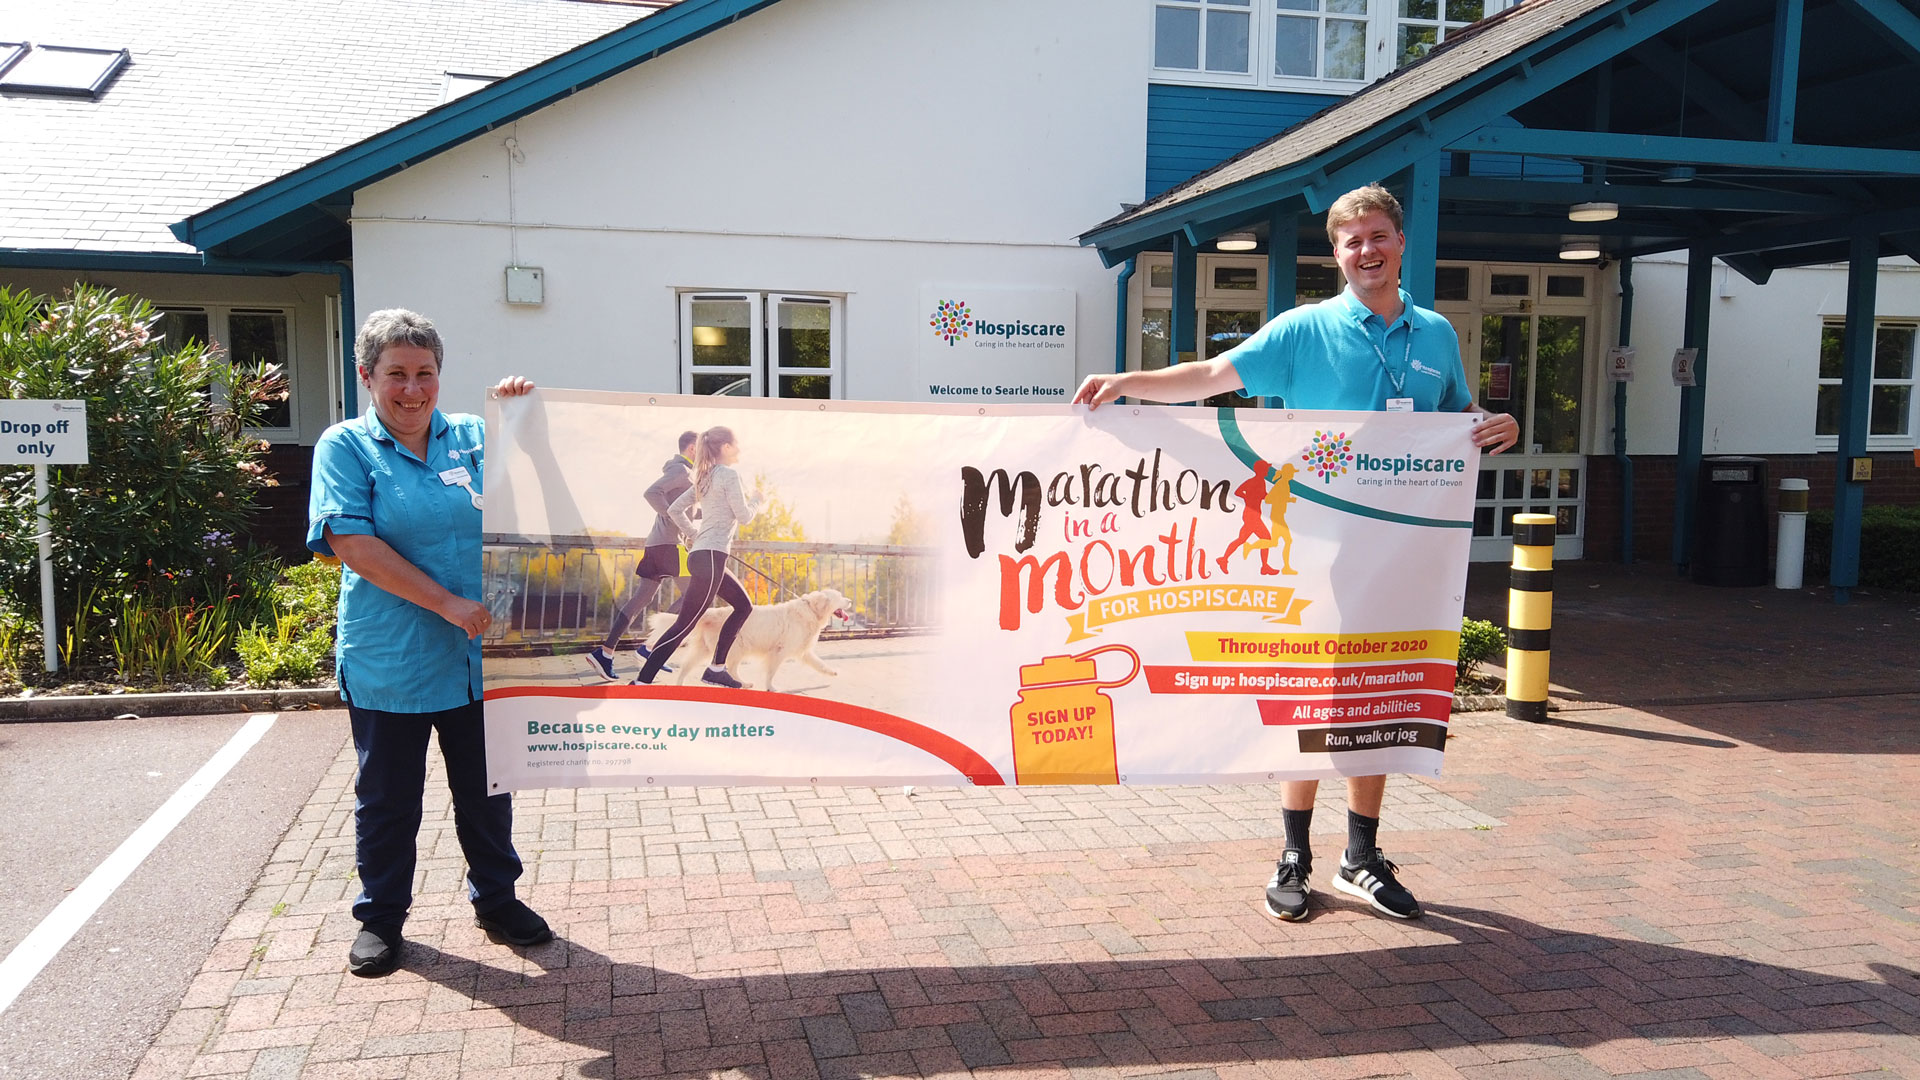 Put your best foot forward for Hospiscare!